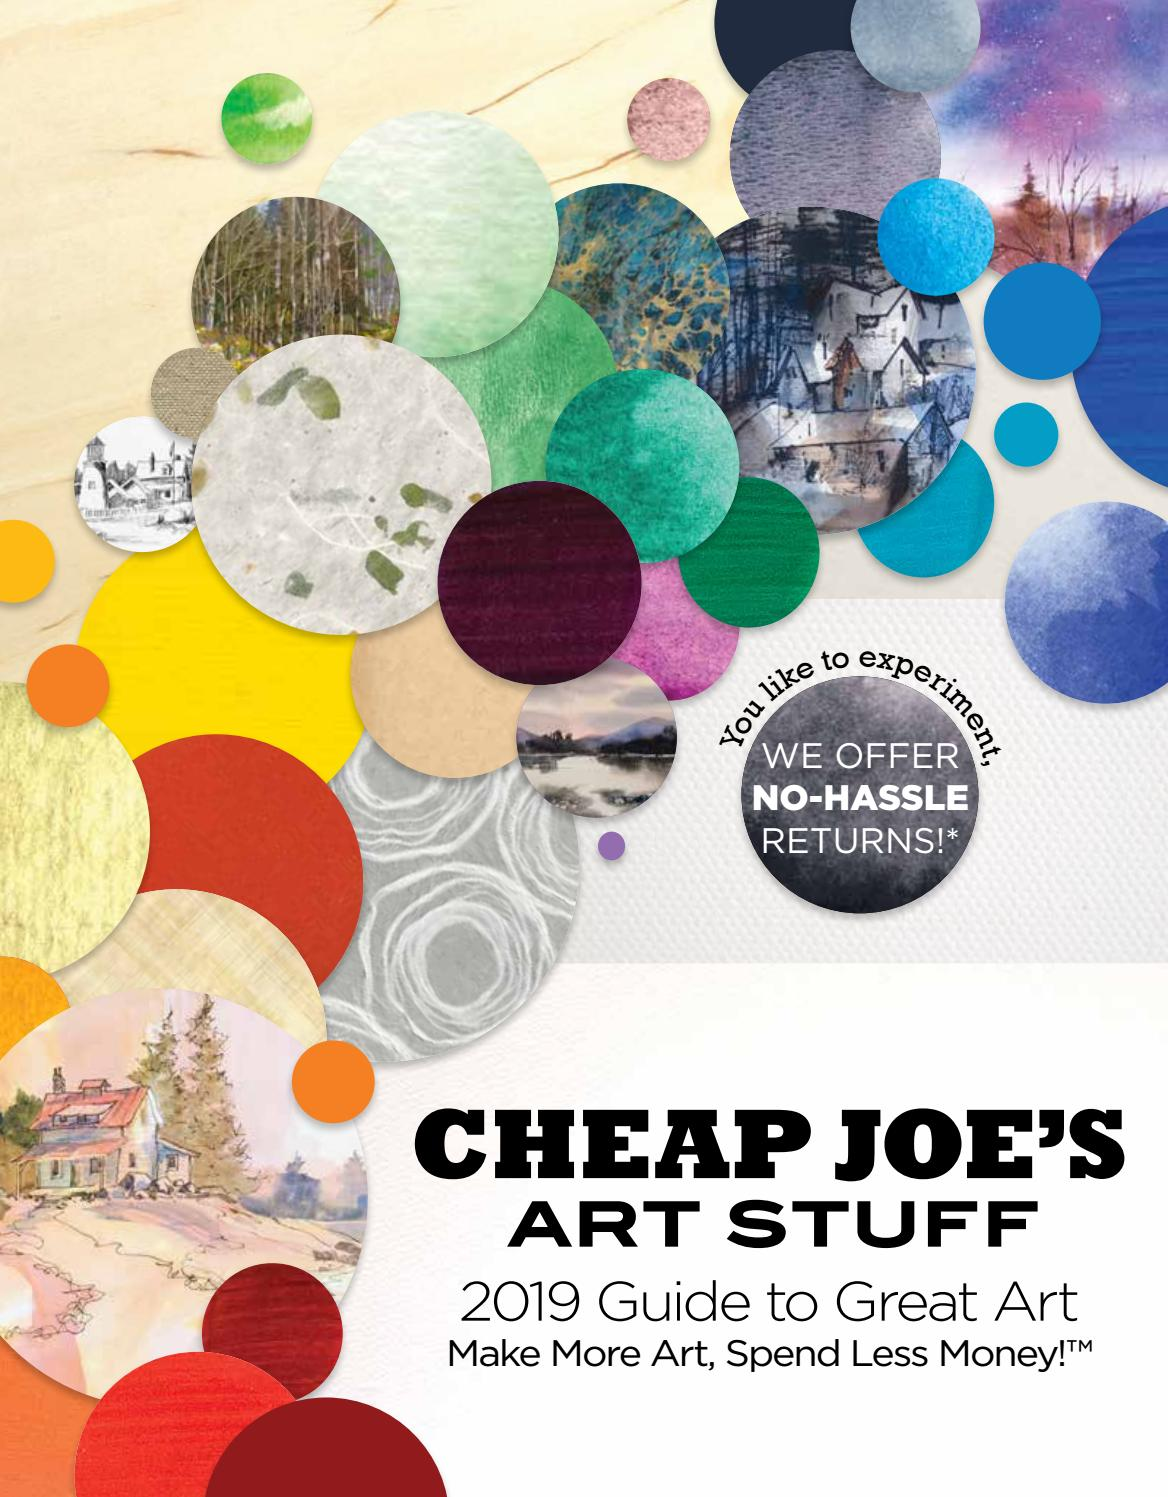 Cheap Joe's Art Stuff 2019 Guide to Great Art by Cheap Joe's